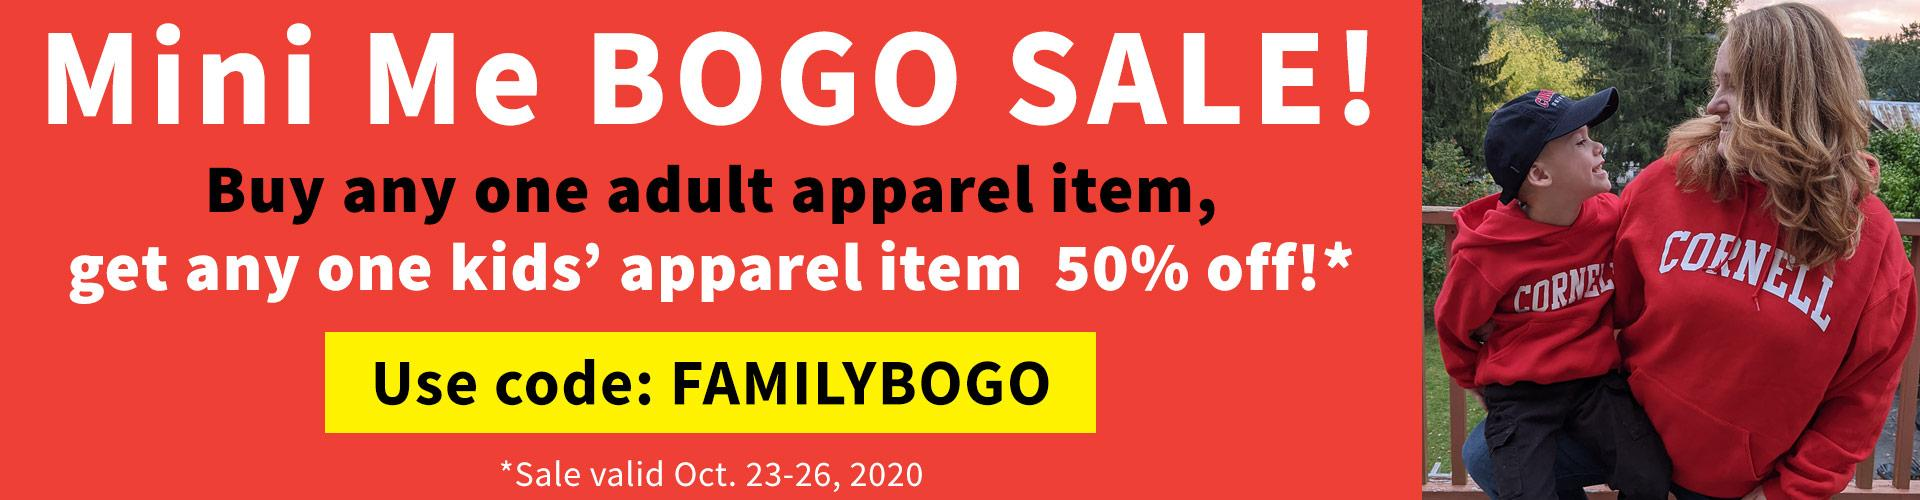 Buy one adult apparel item and get one kids apparel item 50 percent off Oct. 23-26